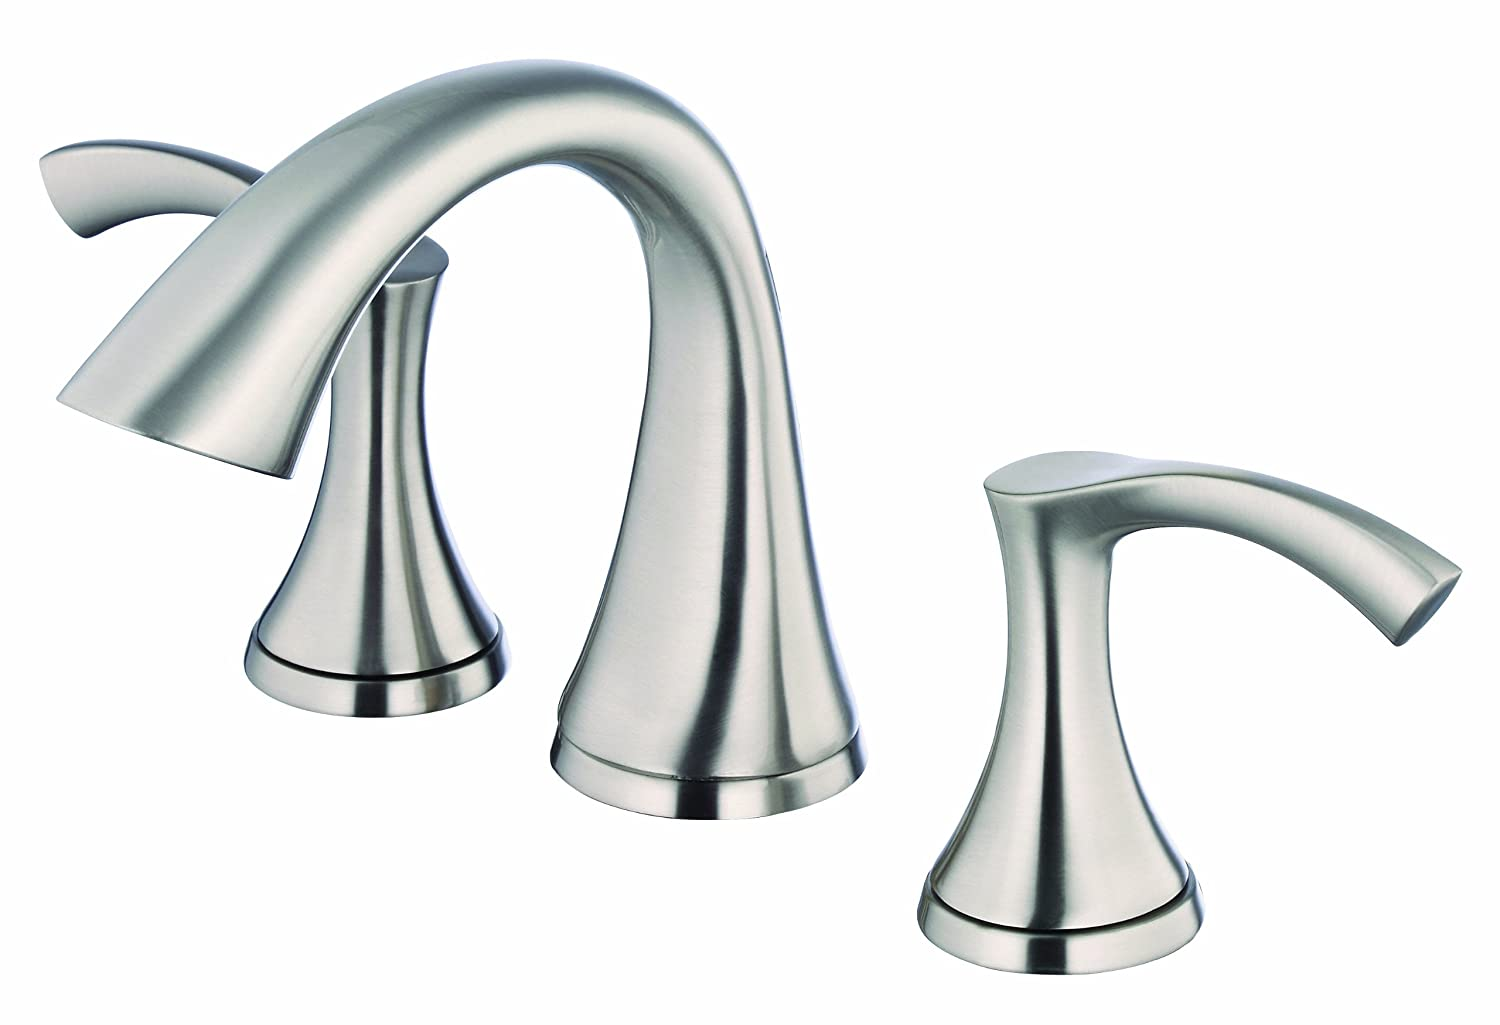 centerset in fairmont nickel p handle danze faucet brushed bathroom faucets sink